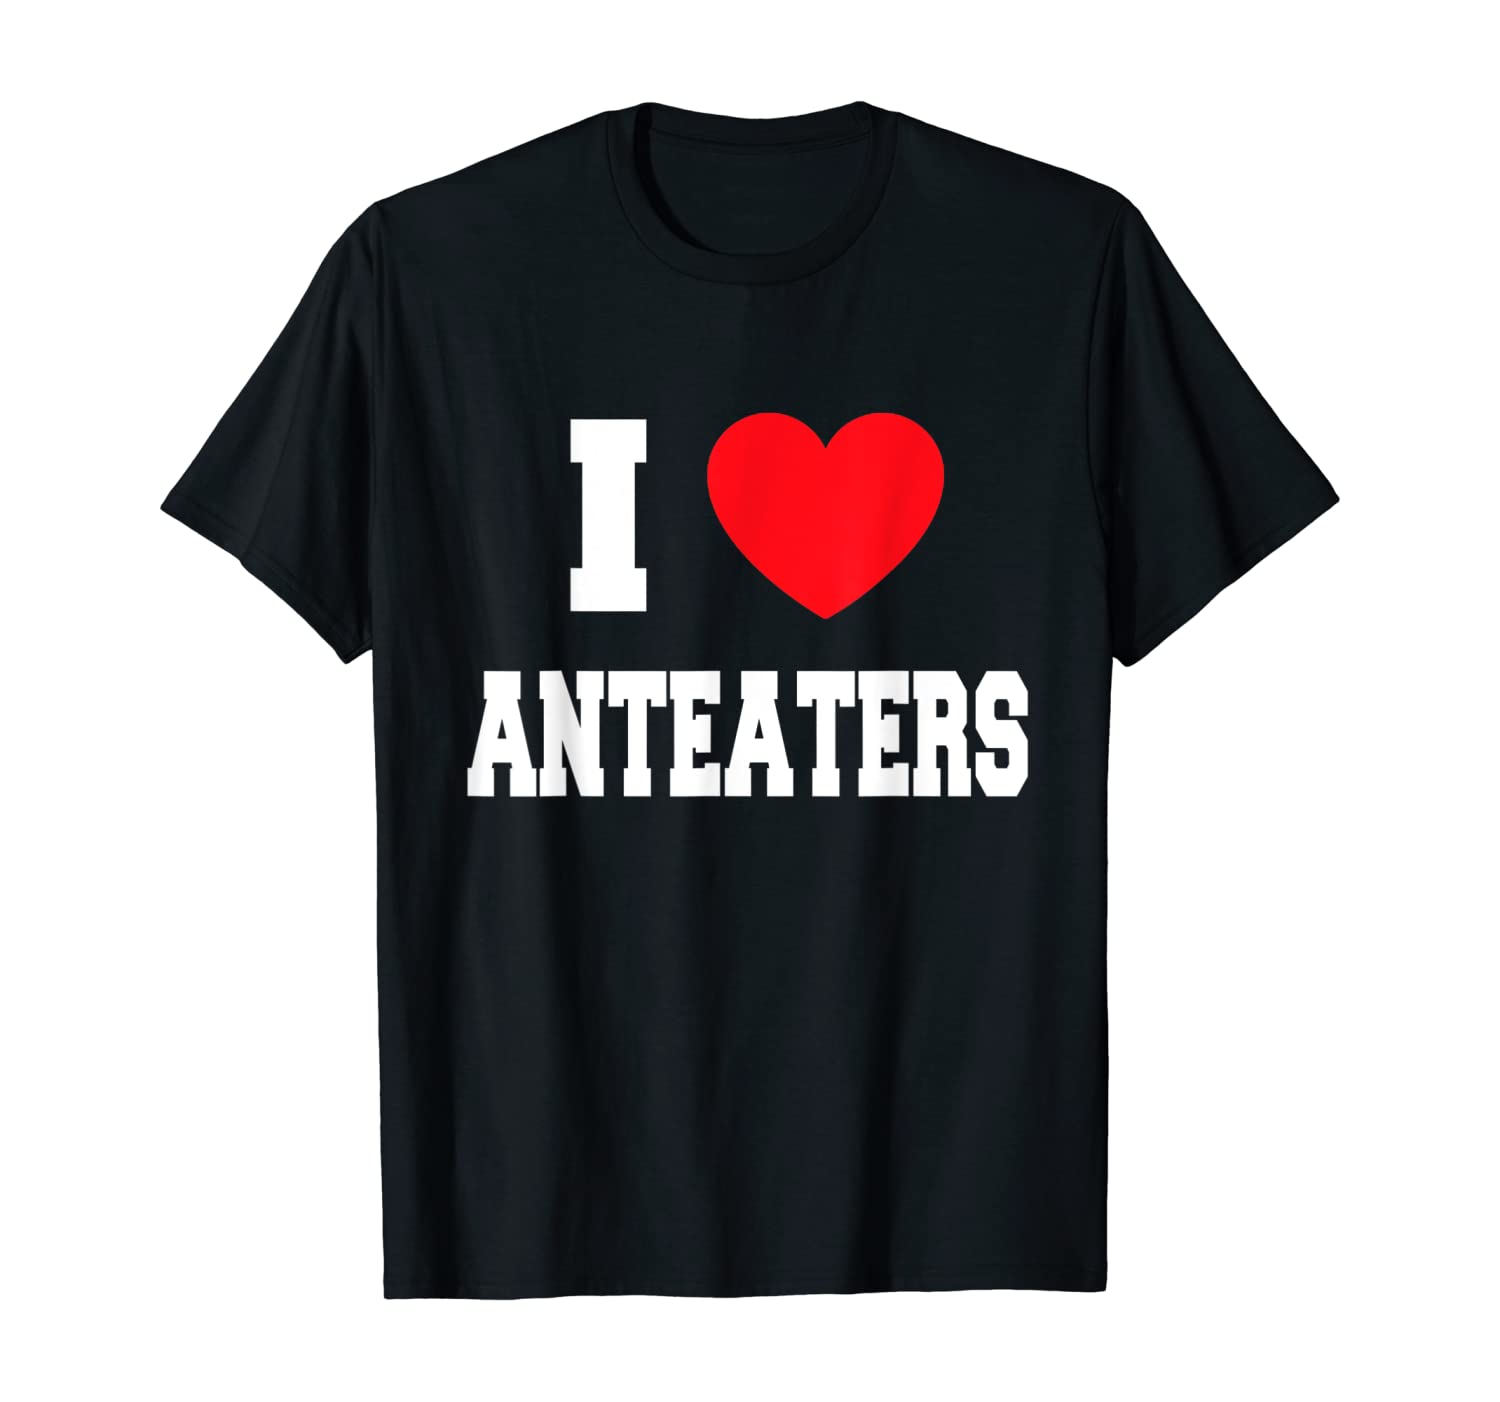 Love Anteaters Shirts